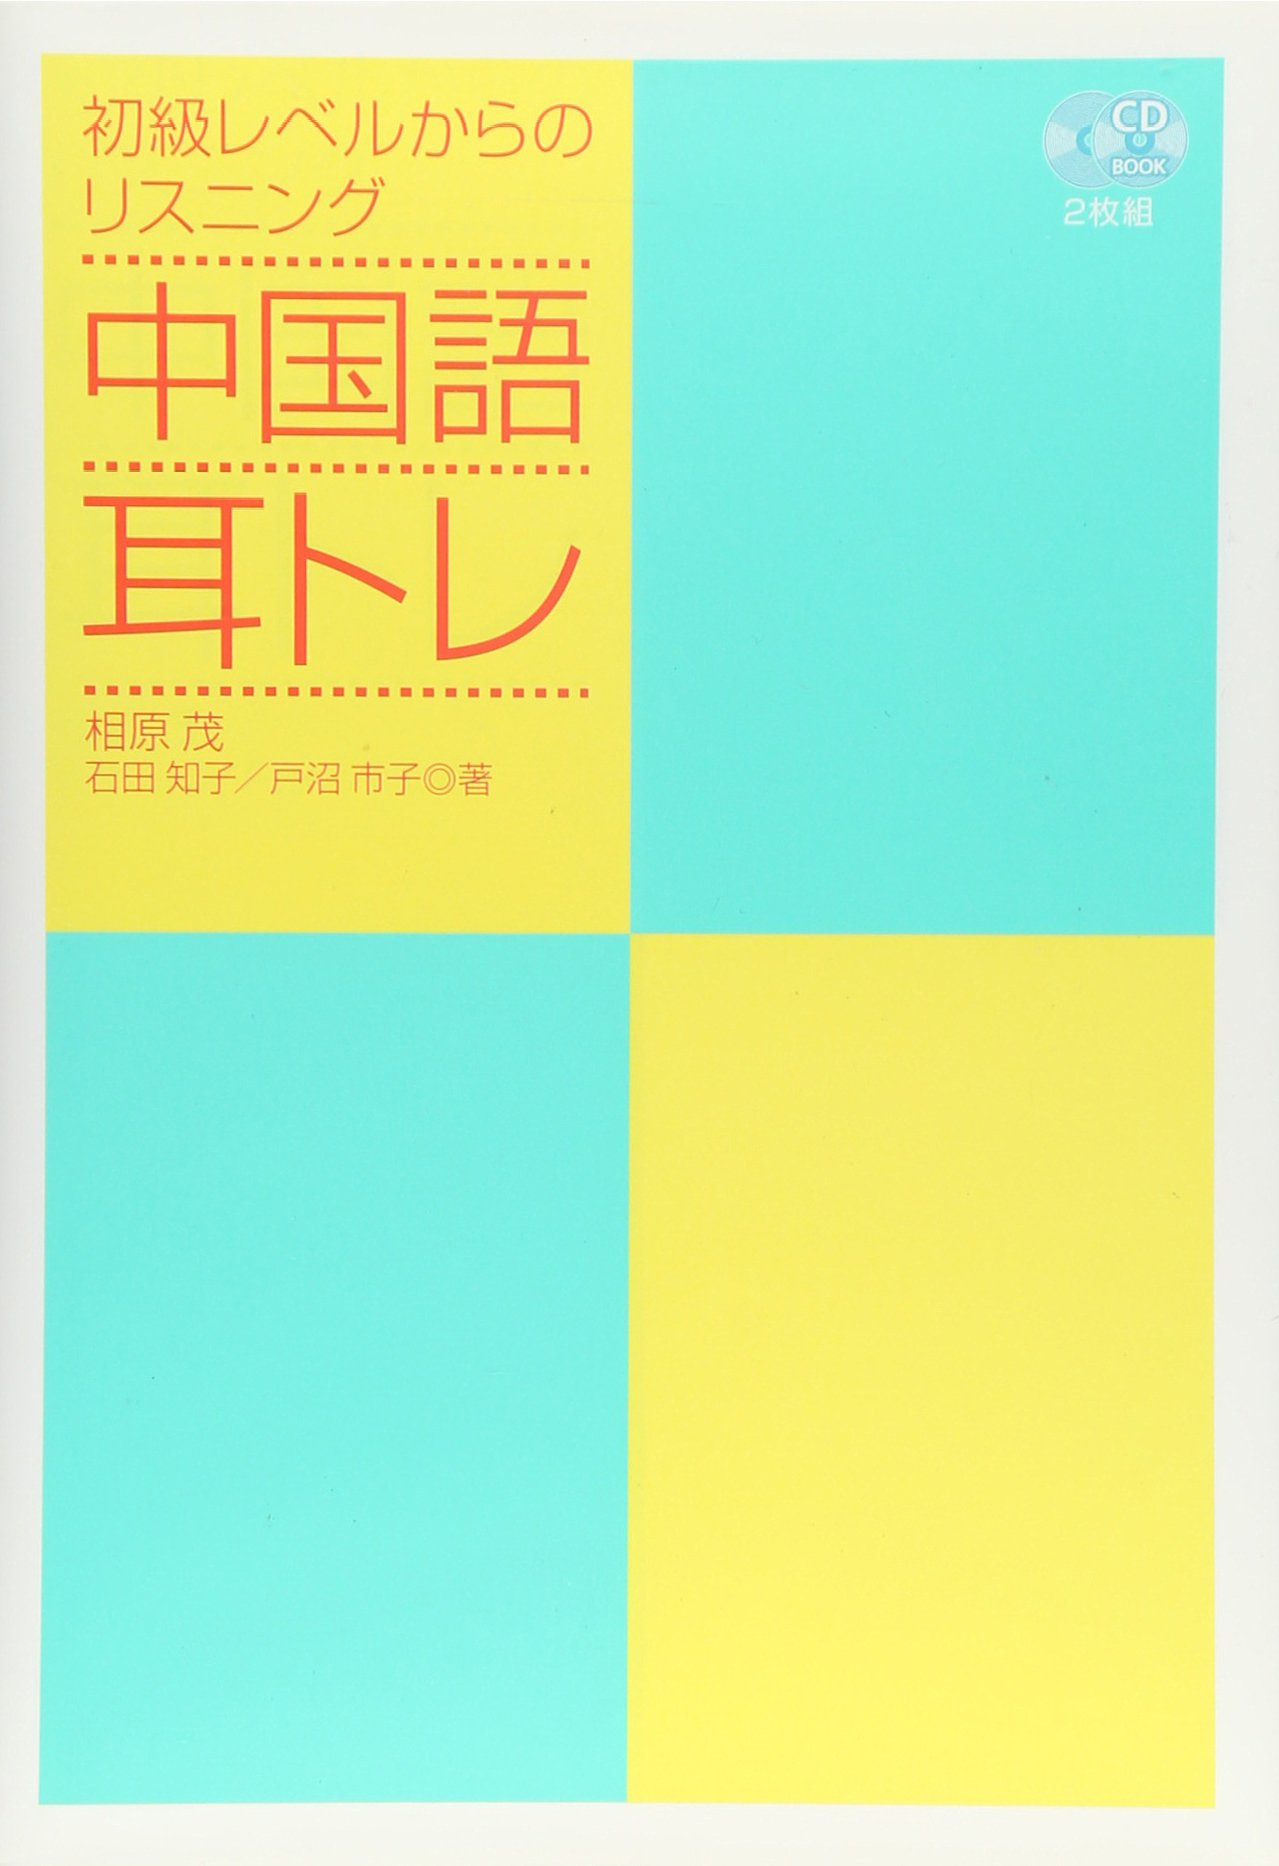 Chinese Torre ear - listening from the elementary level (CD BOOK) (2006) ISBN: 4887244193 [Japanese Import] PDF